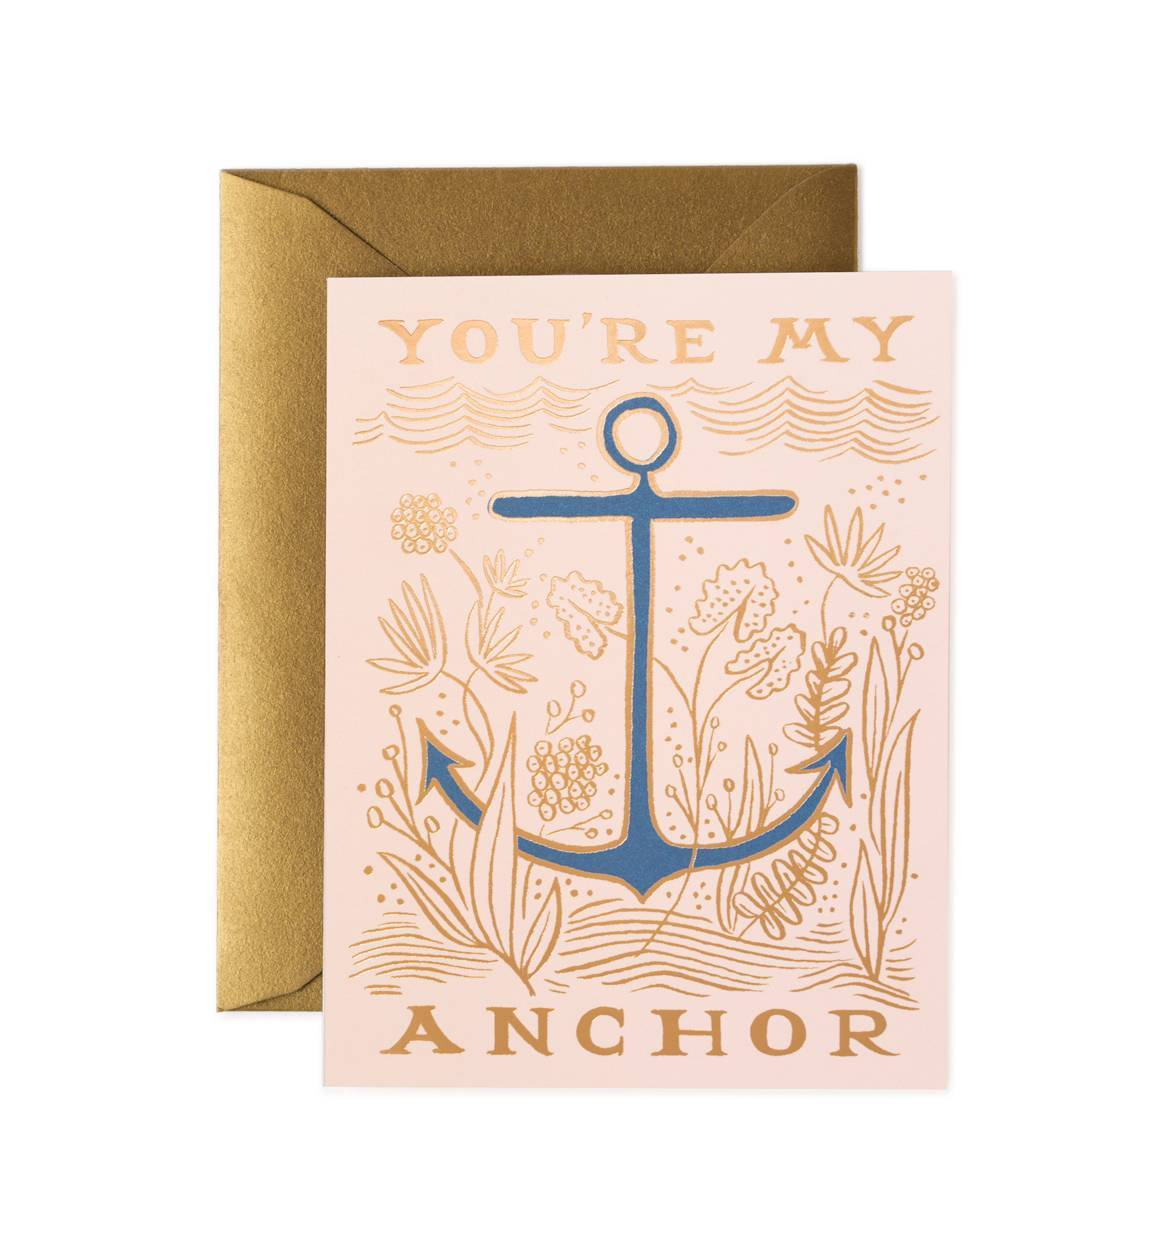 Thanks love you're my anchor gratitude card